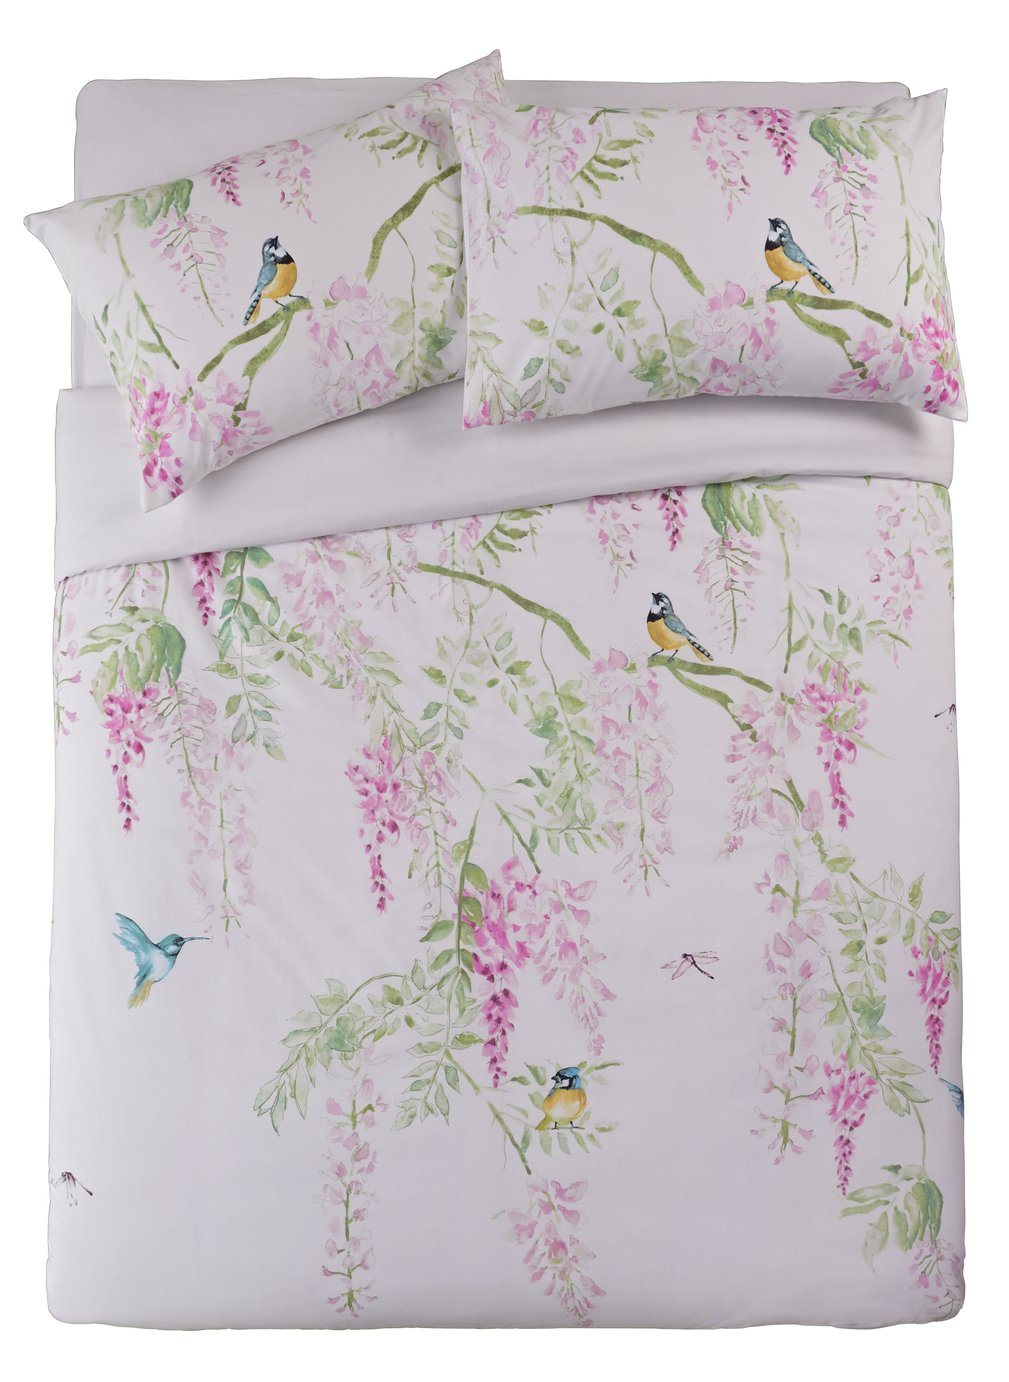 Argos Home Blue Tit Printed Bedding Set - Kingsize